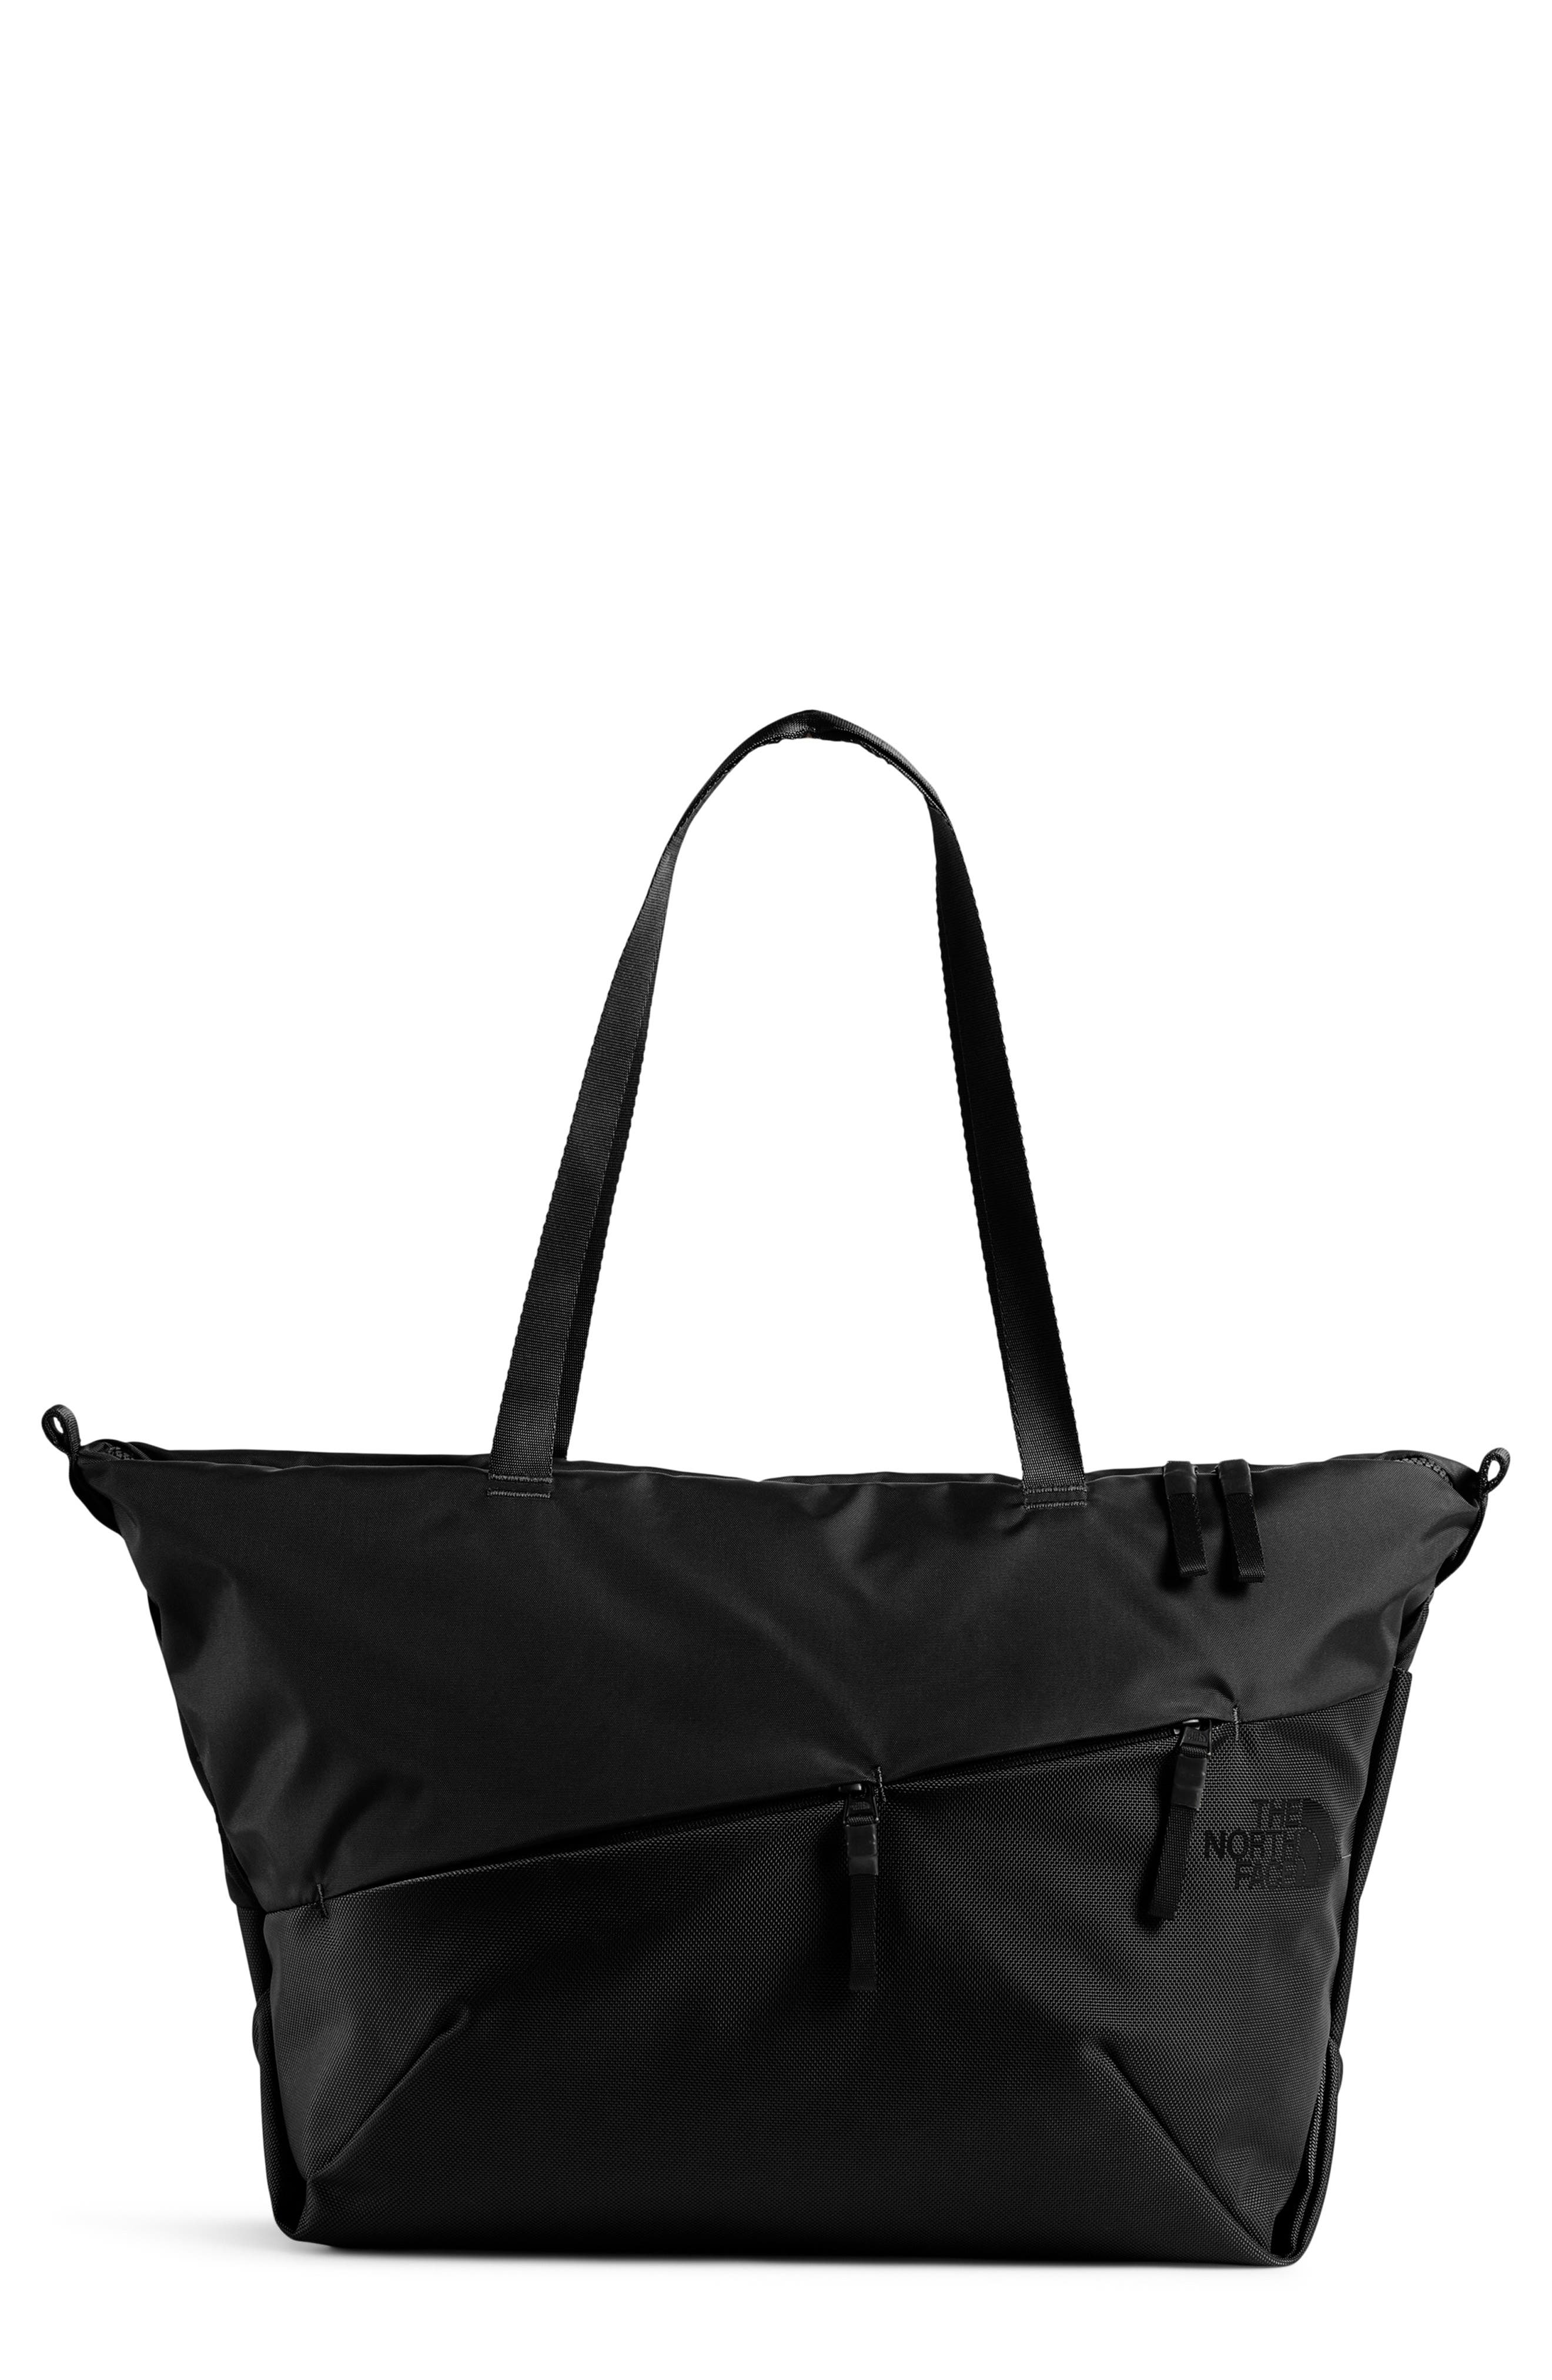 THE NORTH FACE, Electra Large Tote, Main thumbnail 1, color, 001